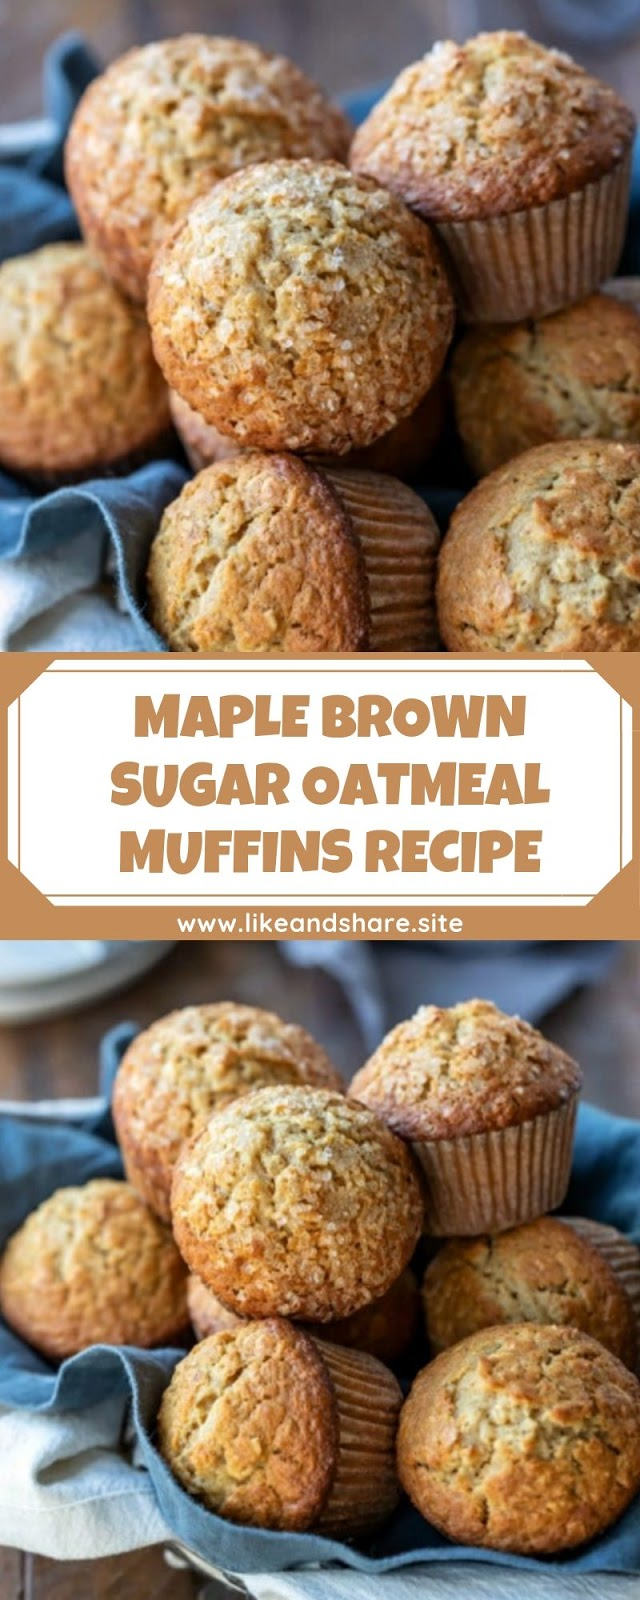 MAPLE BROWN SUGAR OATMEAL MUFFINS RECIPE